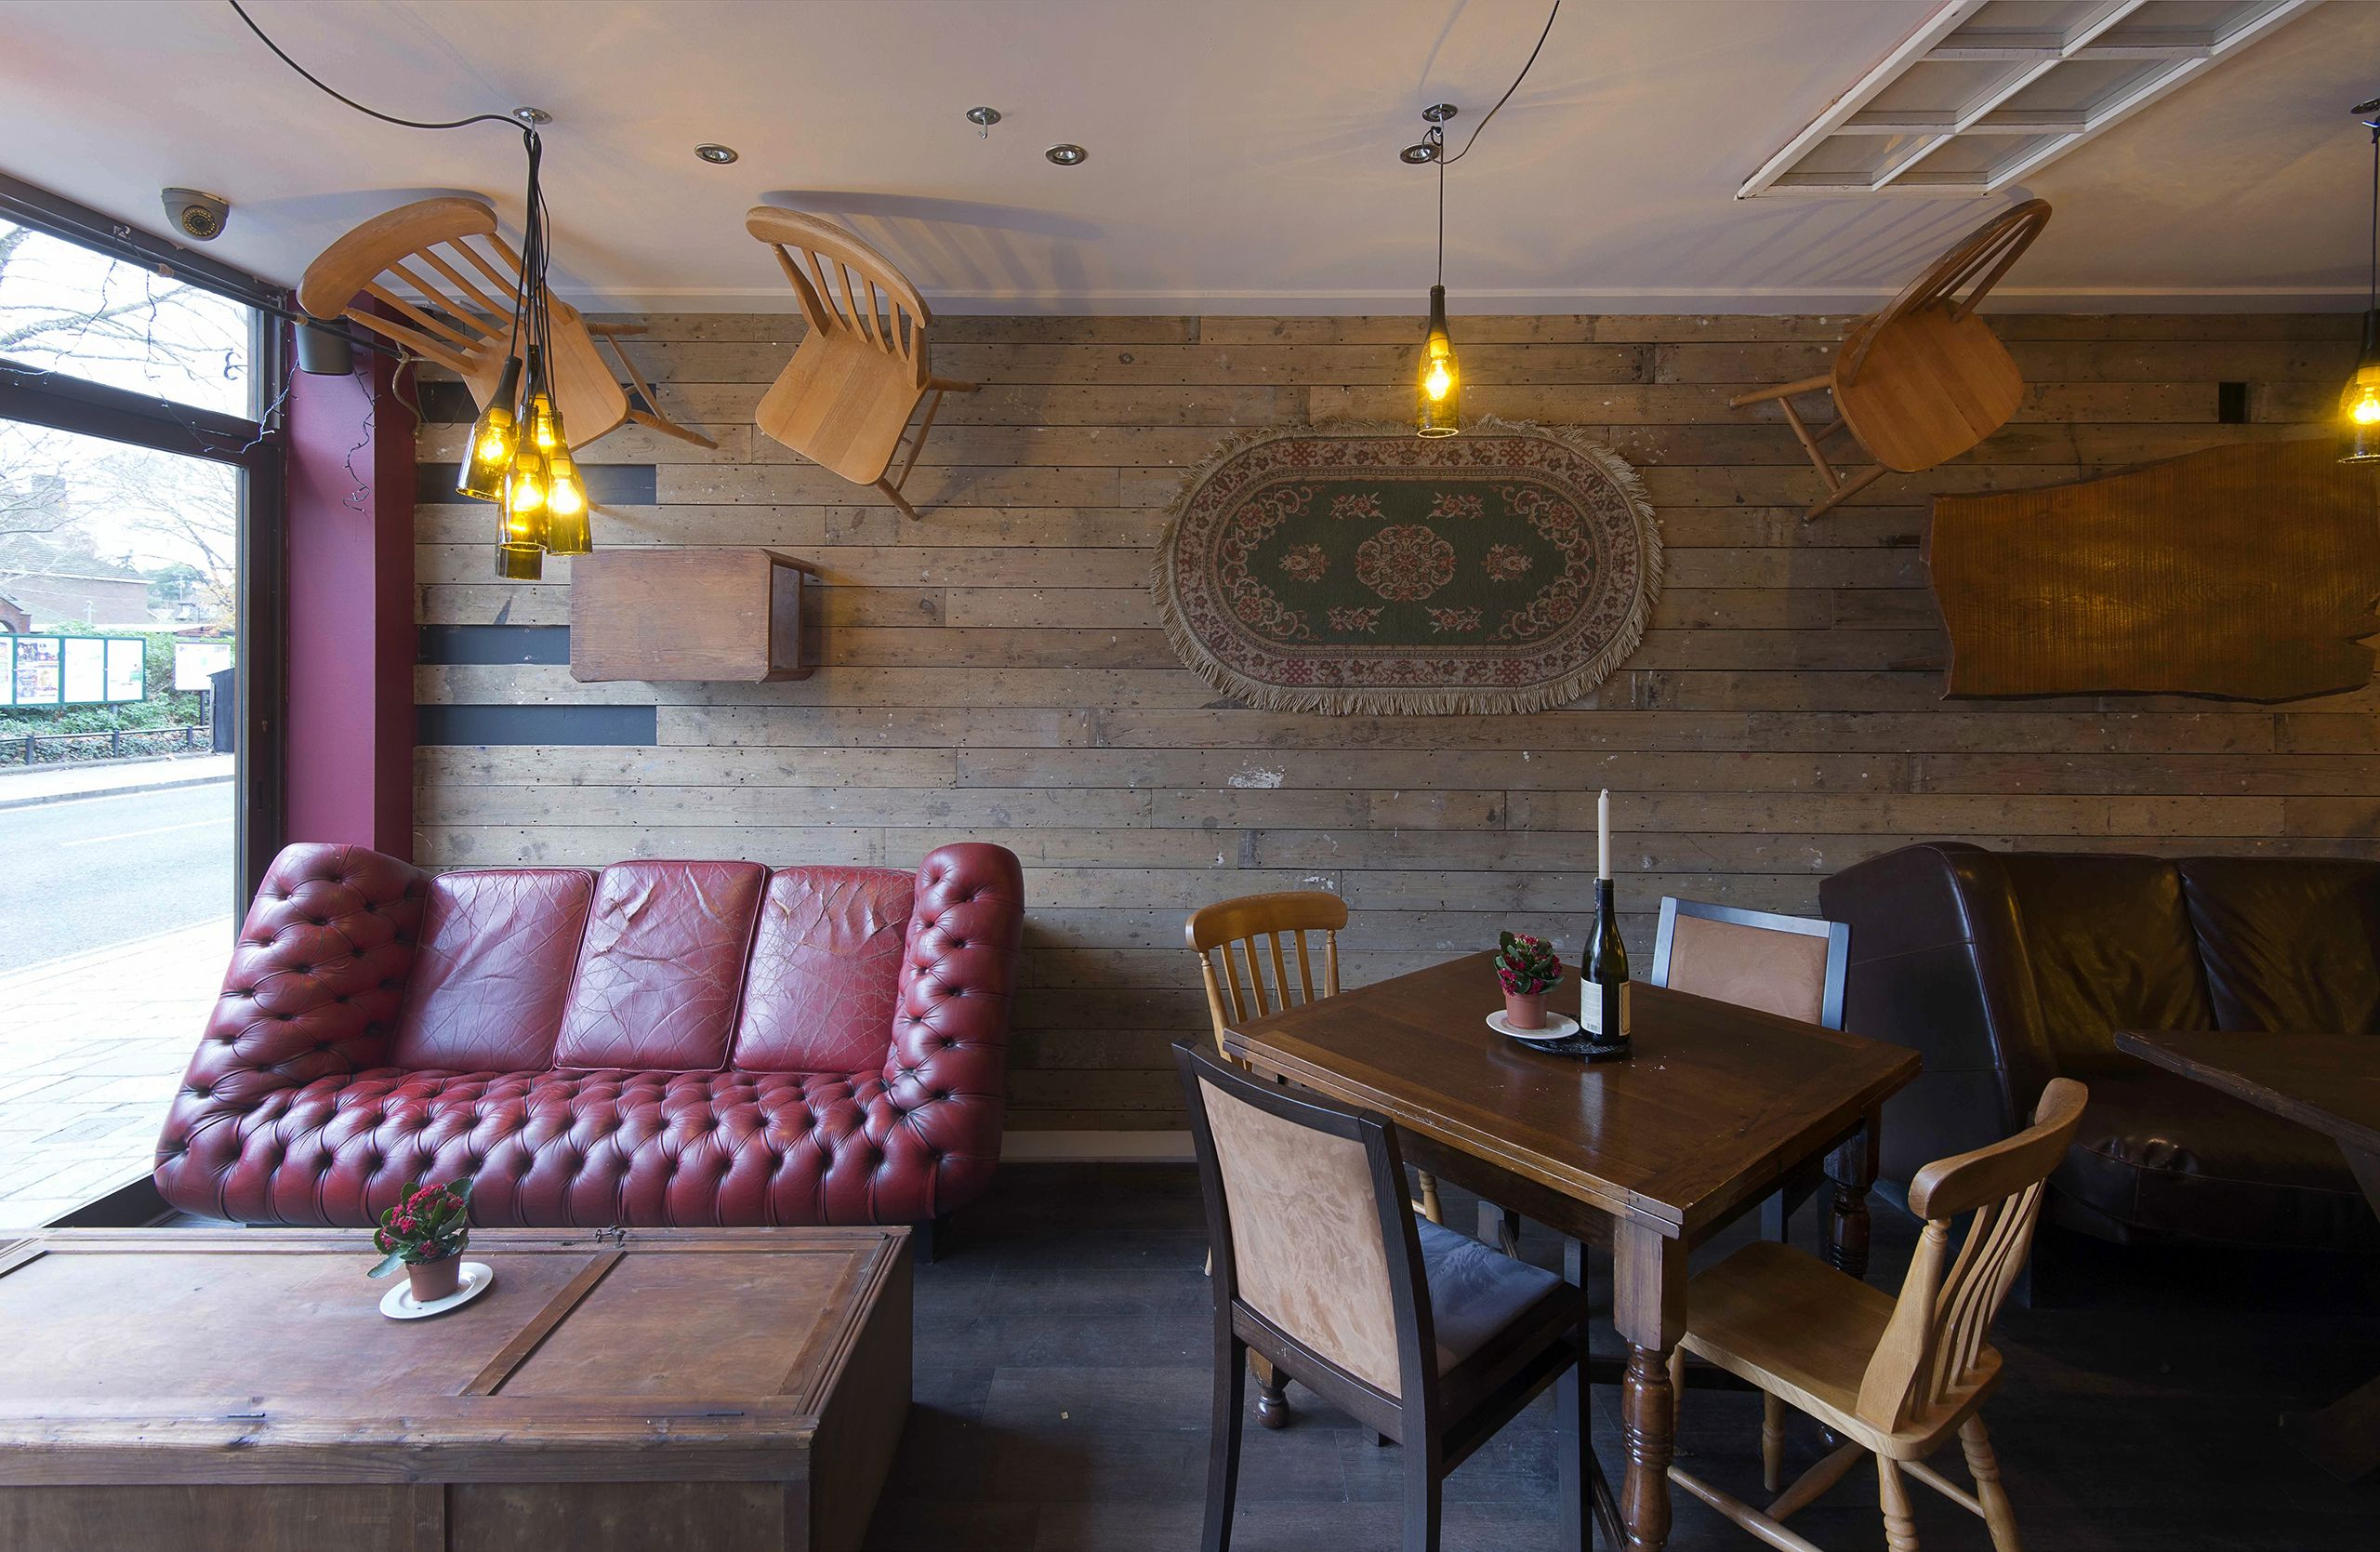 Wine bar Cellar Magneval in Fleet, Hampshire, UK. Featuring off the wall furniture including leather sofa and reclaimed wooden furniture